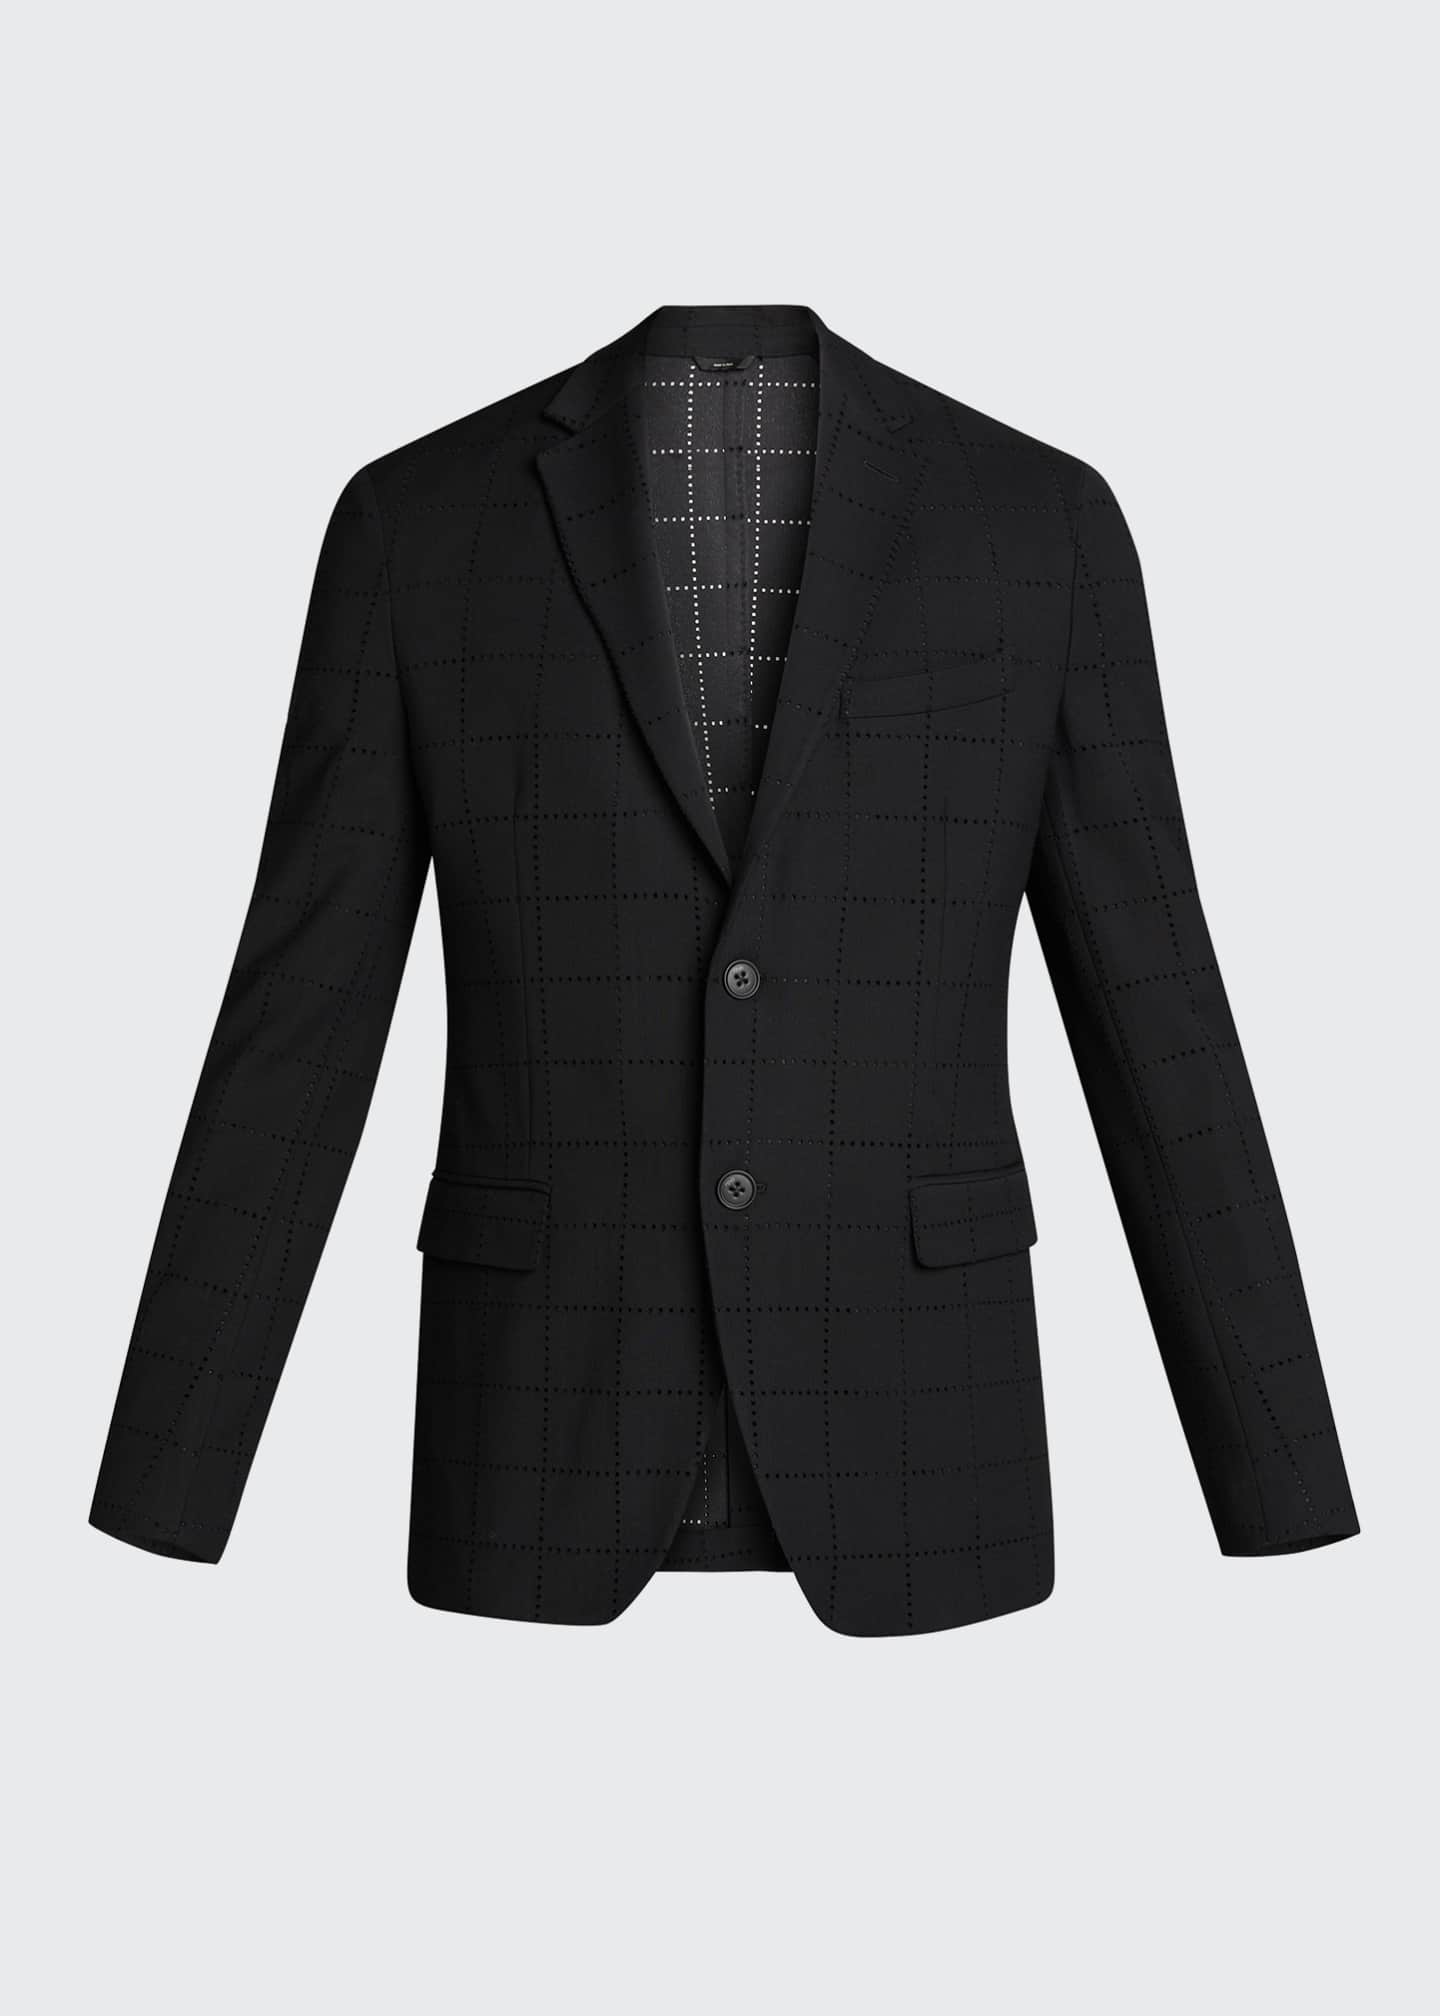 Image 5 of 5: Men's Punched Squares Suit Jacket